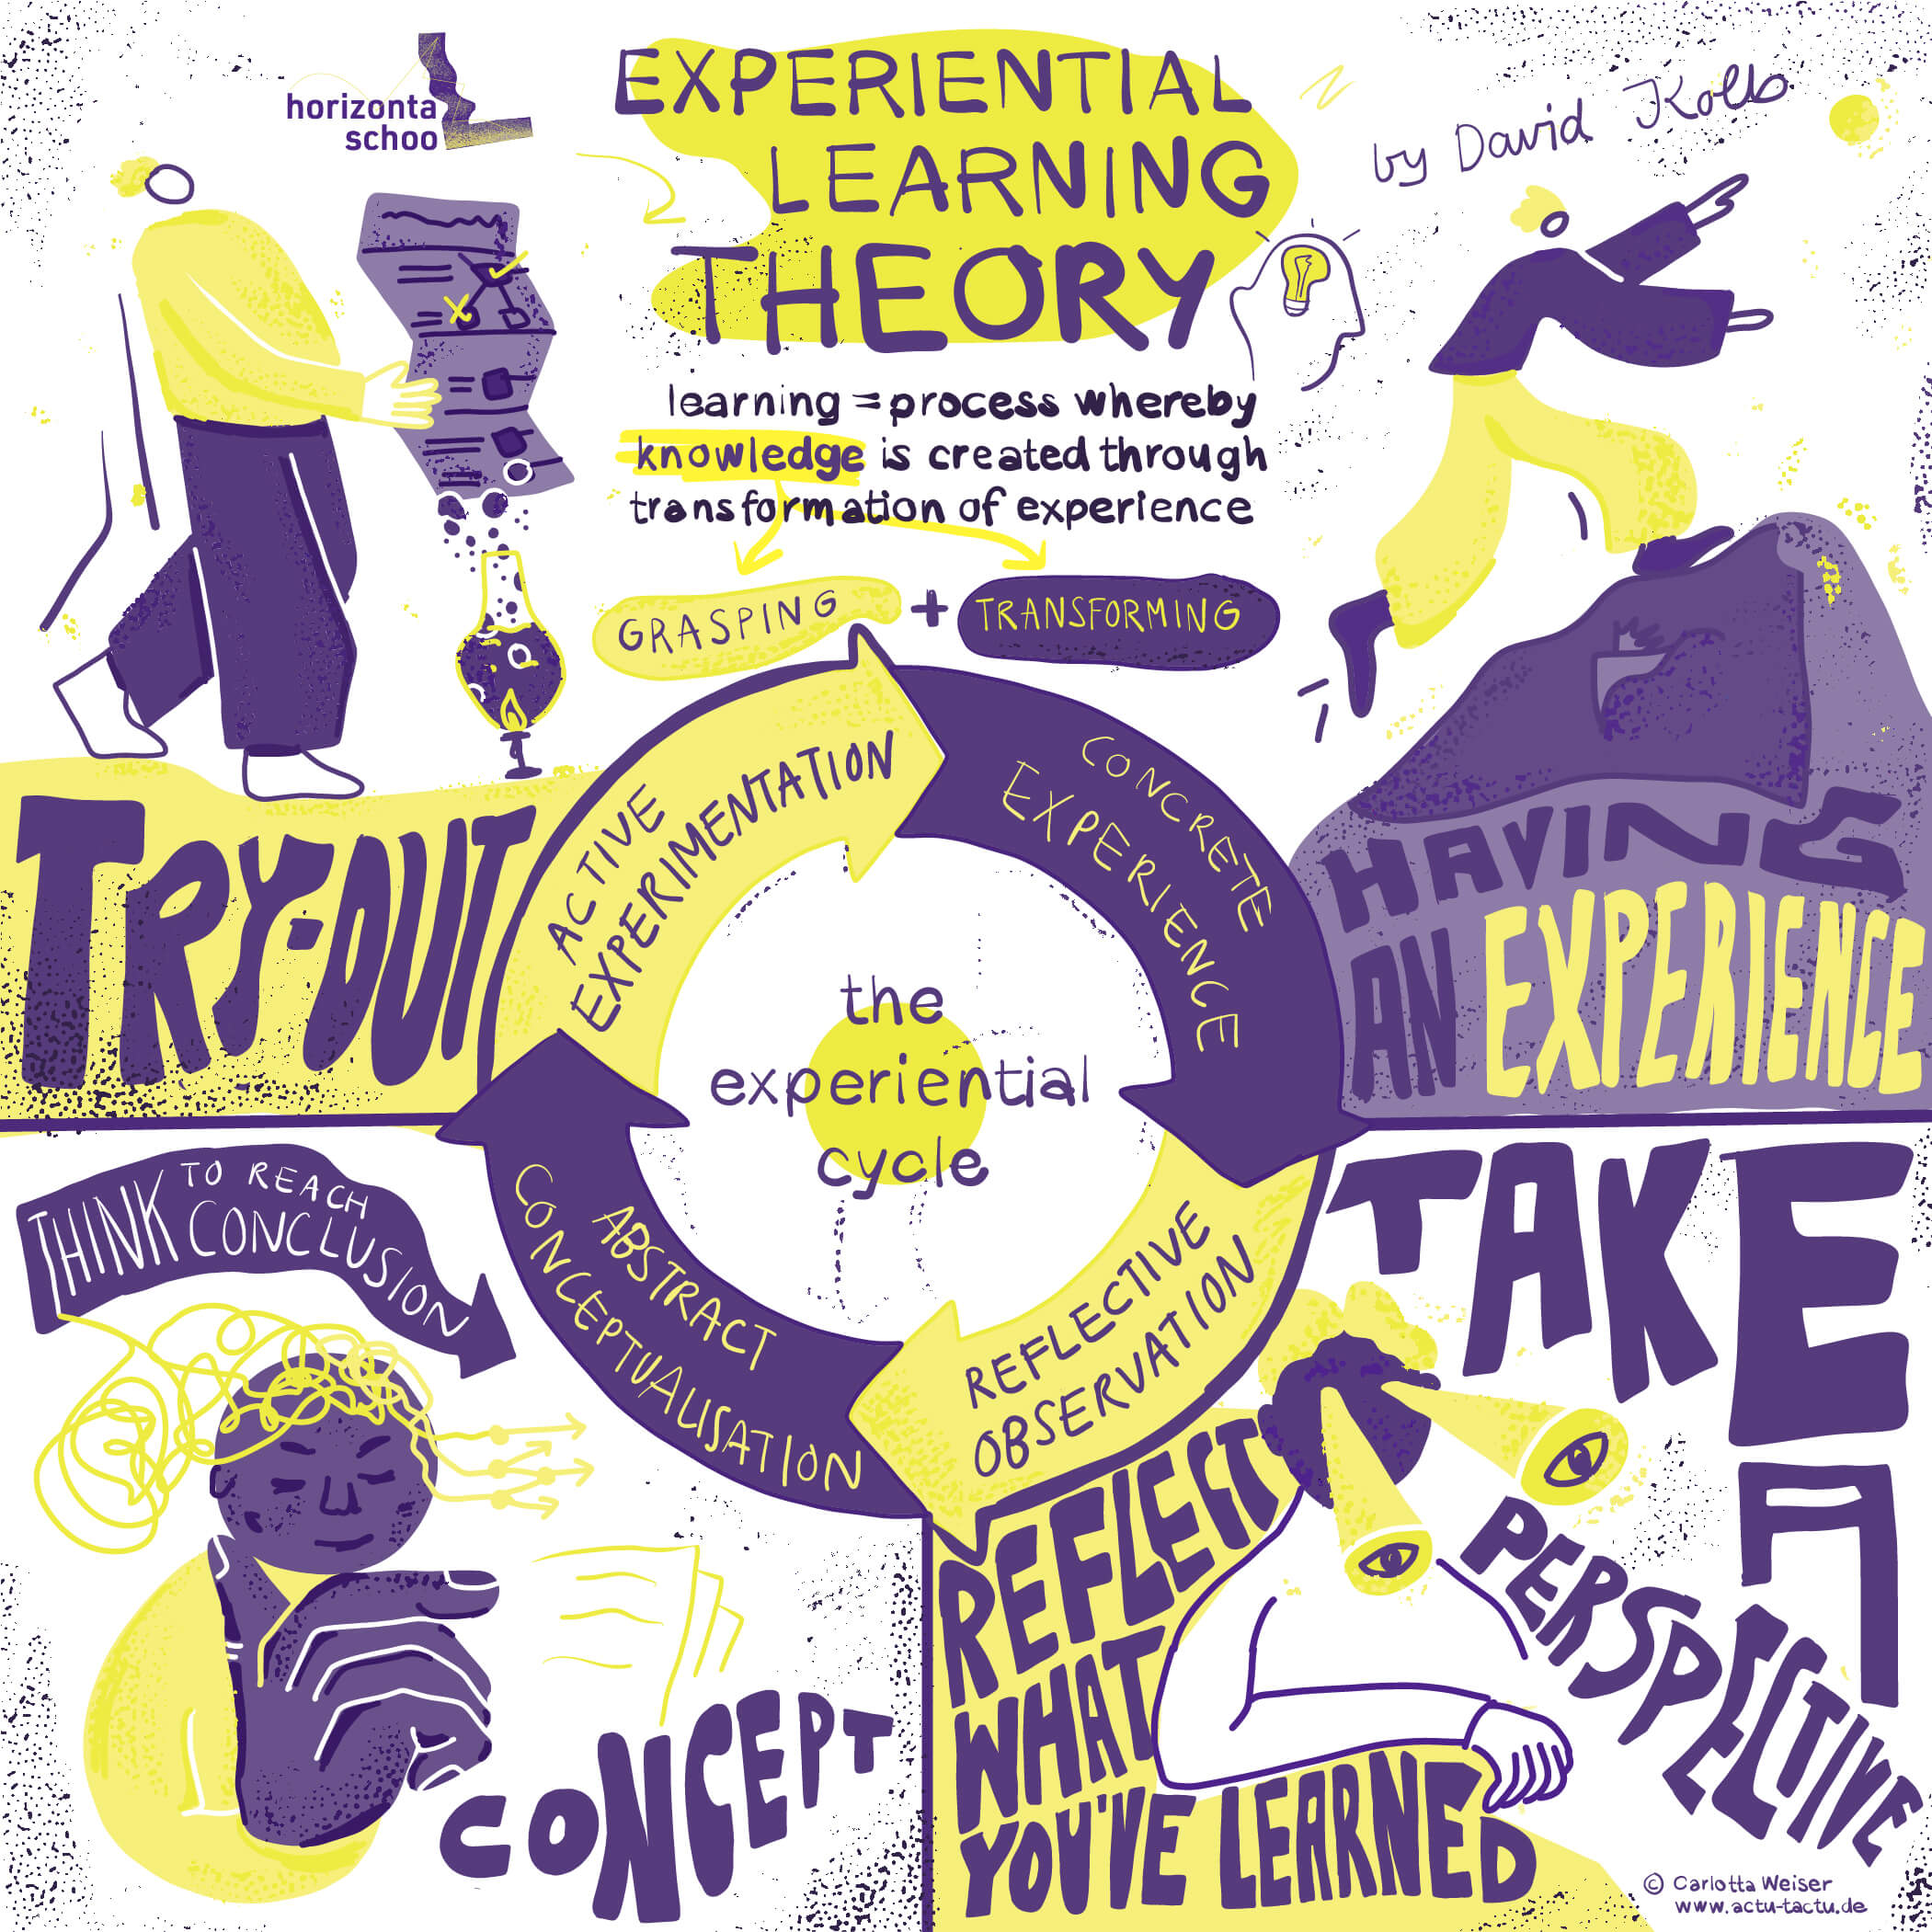 Graphic Recording about the experiential learning theory by David Kolb